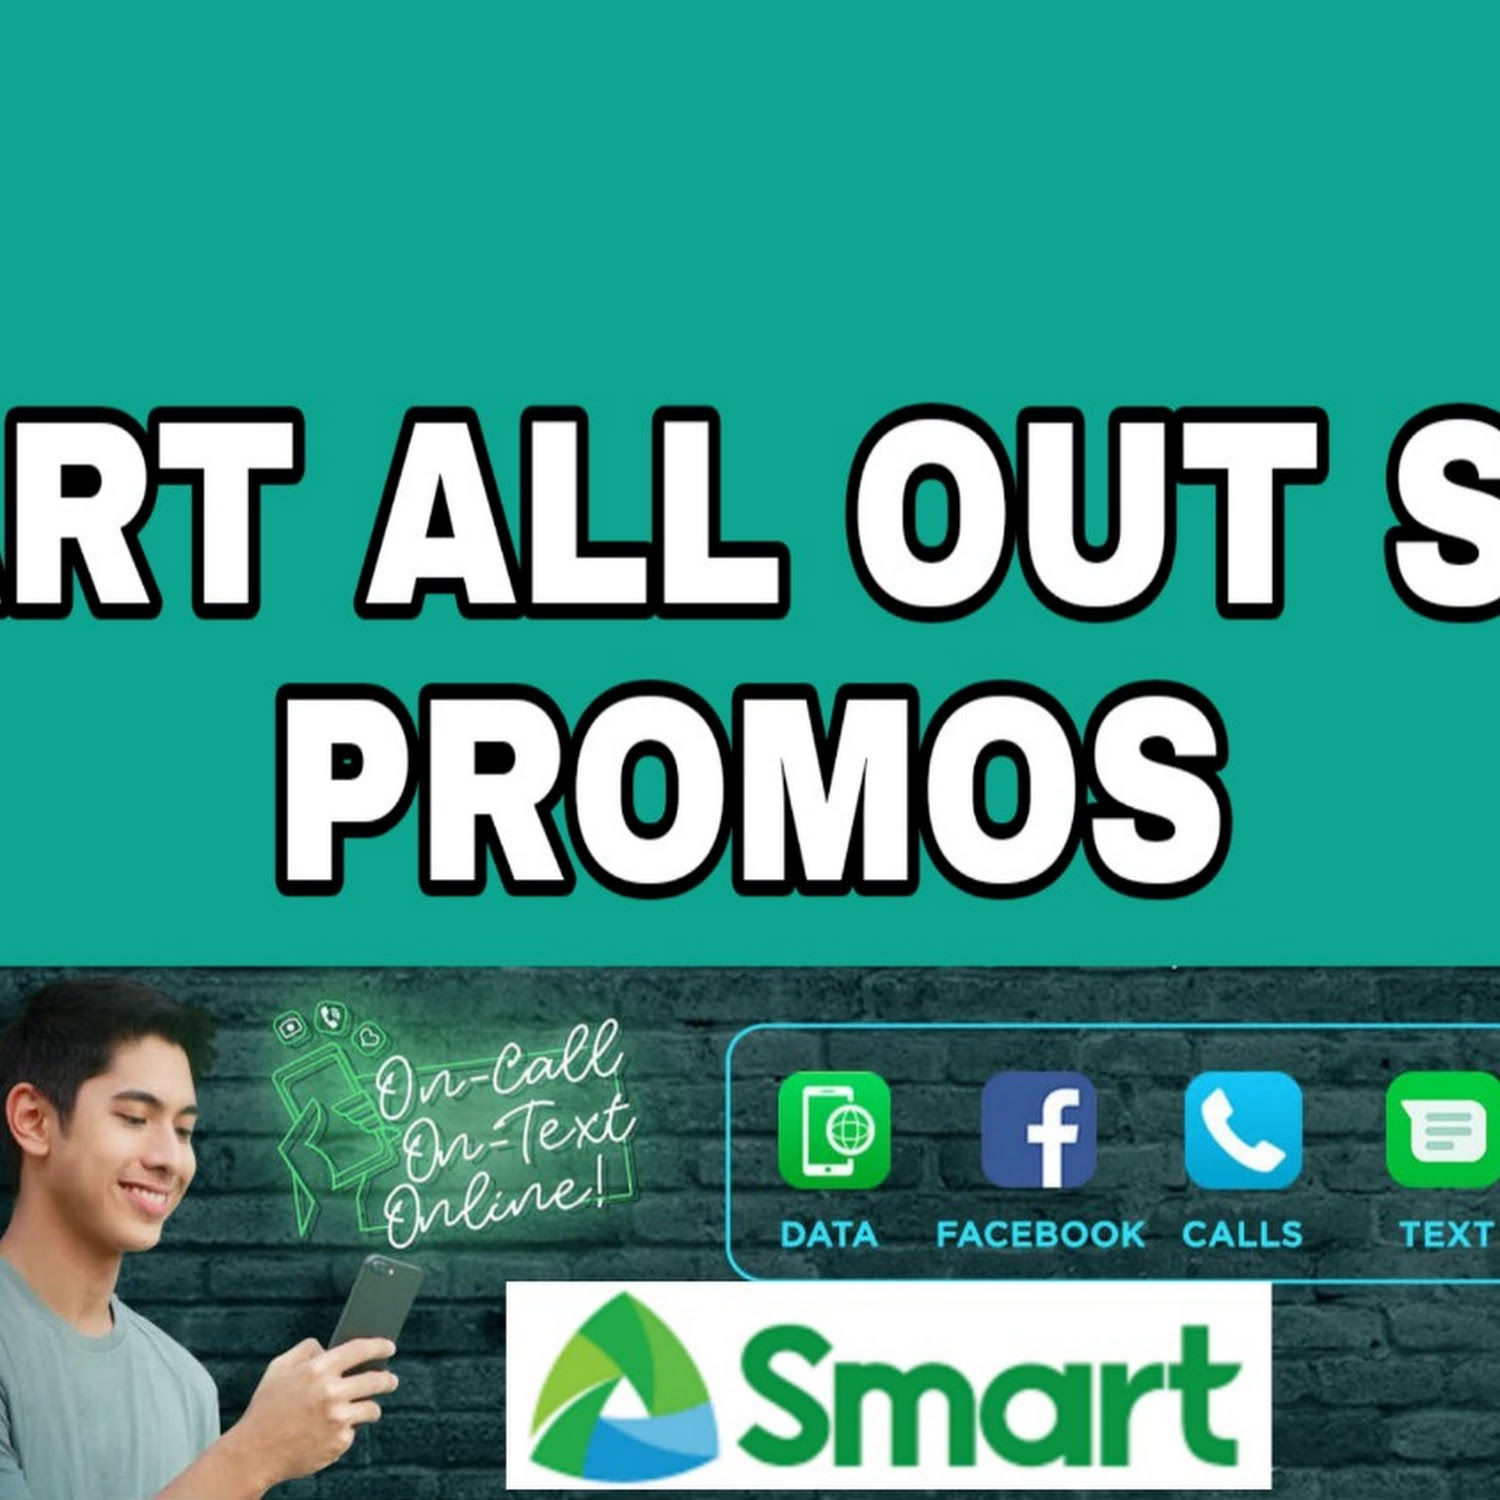 Smart All Out Surf Promos: Mobile Data + FB Data + Unlitext + Trinet Calls